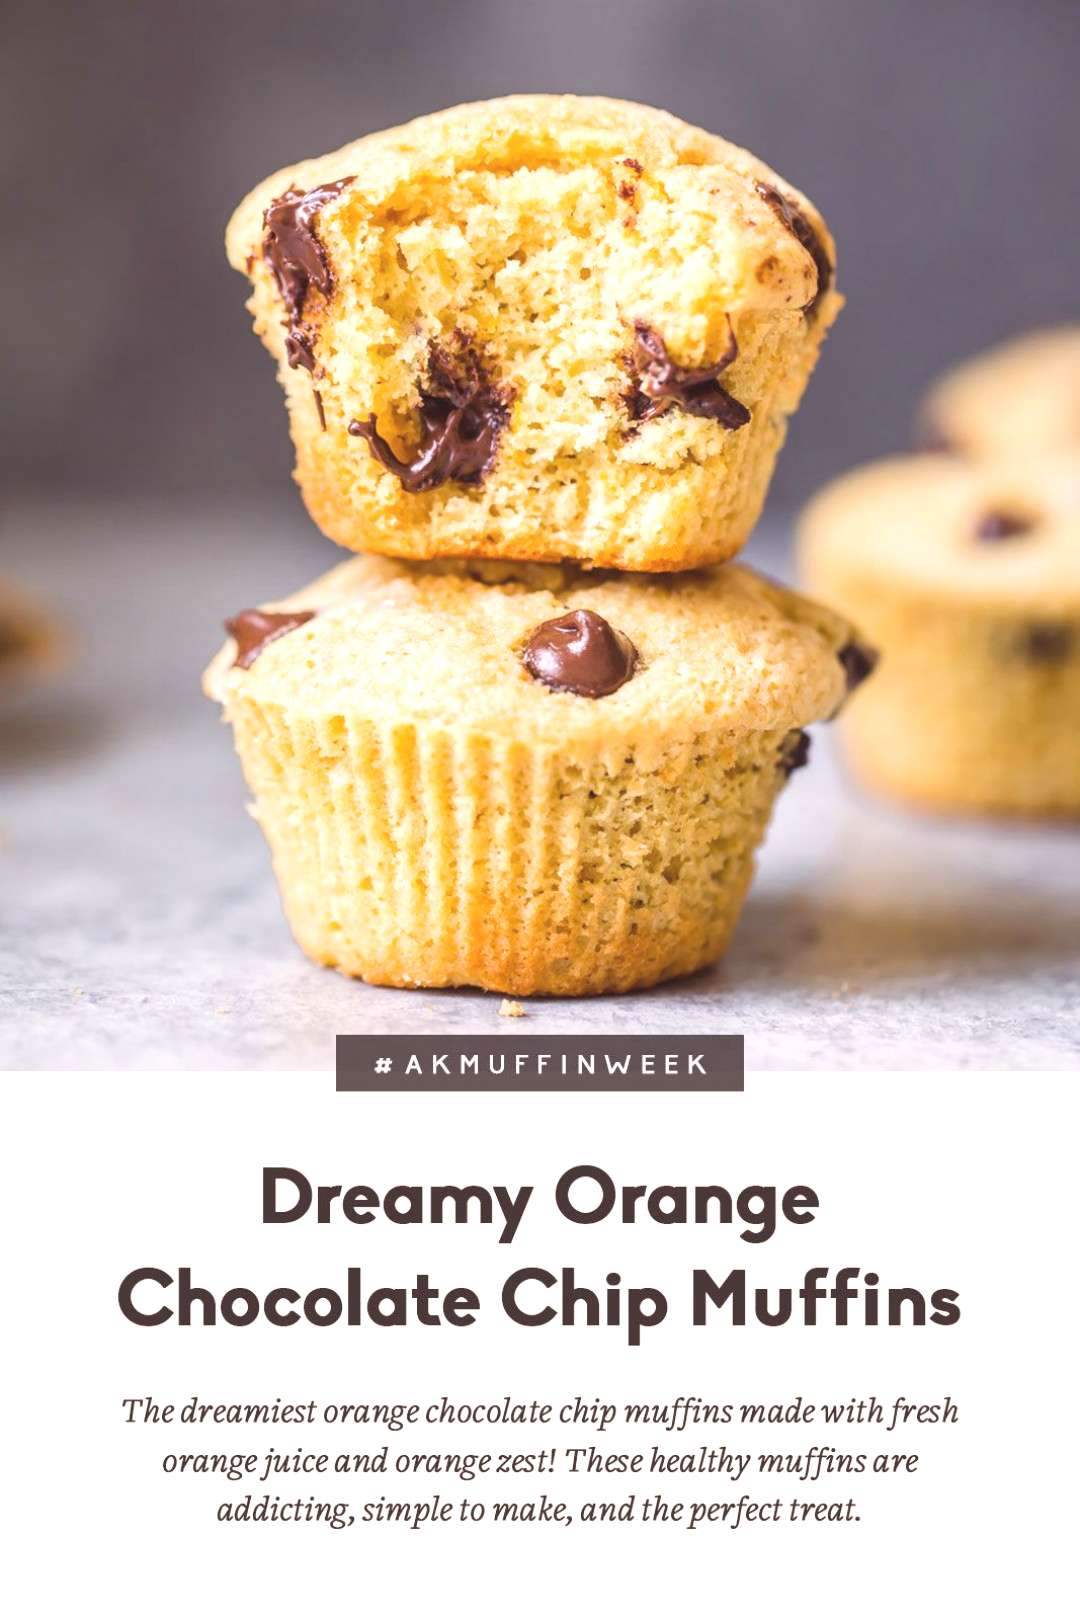 The dreamiest orange chocolate chip muffins made with fresh orange juice and orange zest! These hea